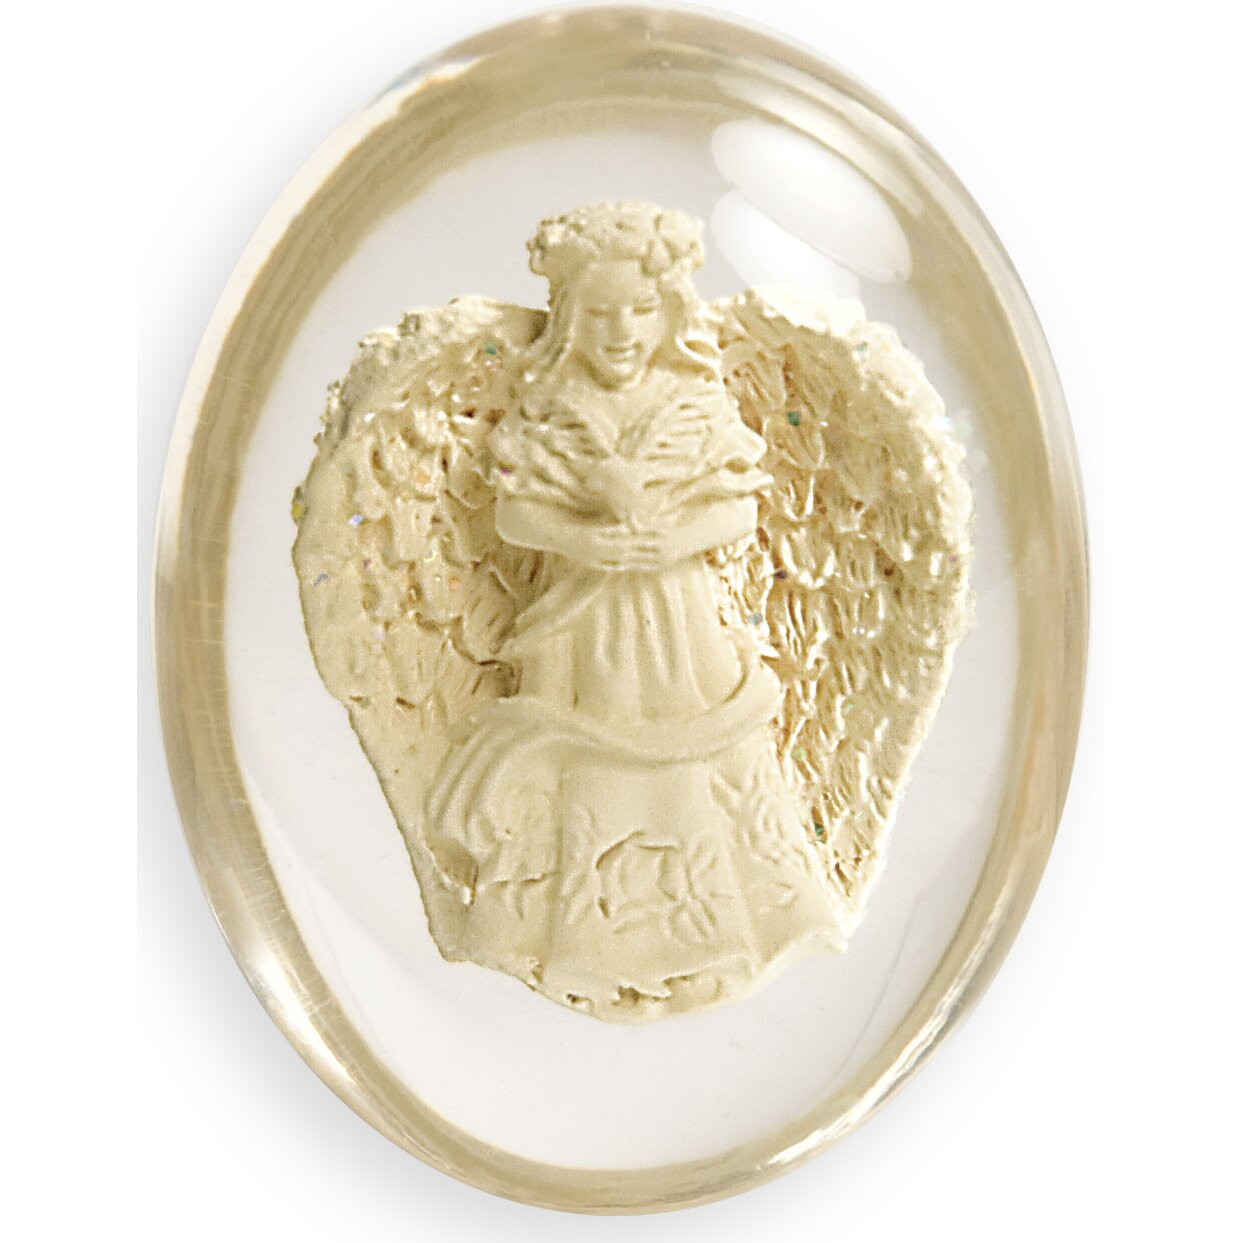 Angelstar peace worry decorative stone reviews for Decorative rocks for sale near me